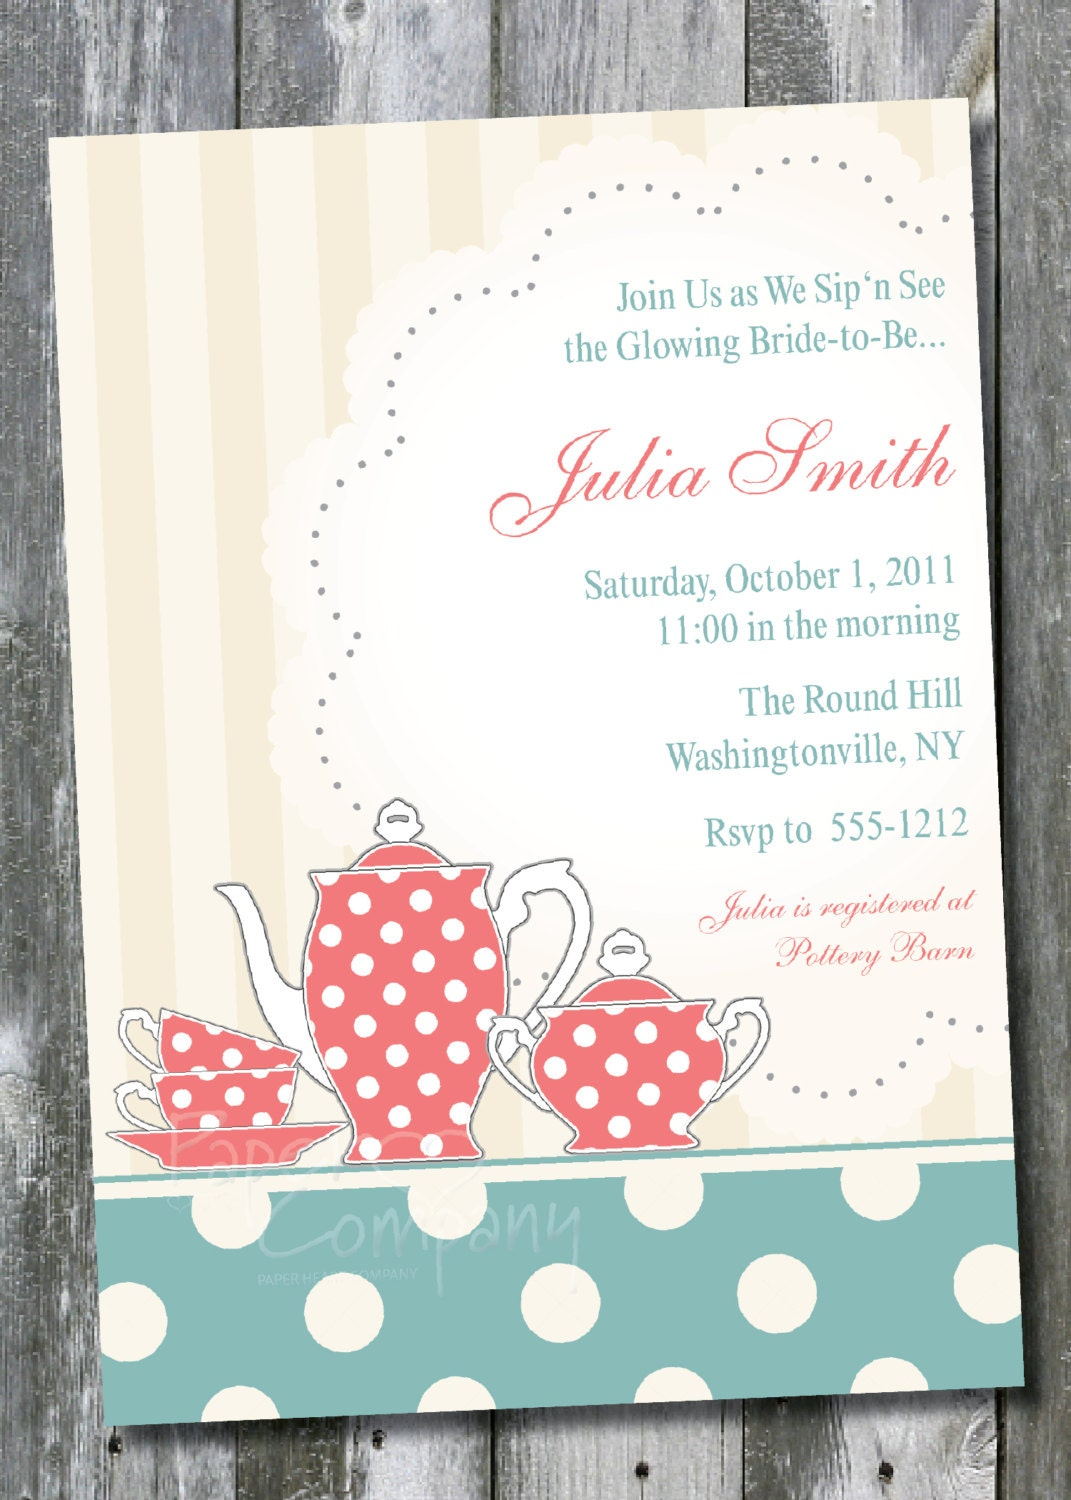 ... designs and coordinate events or Baby Shower Invitations at Walgreens